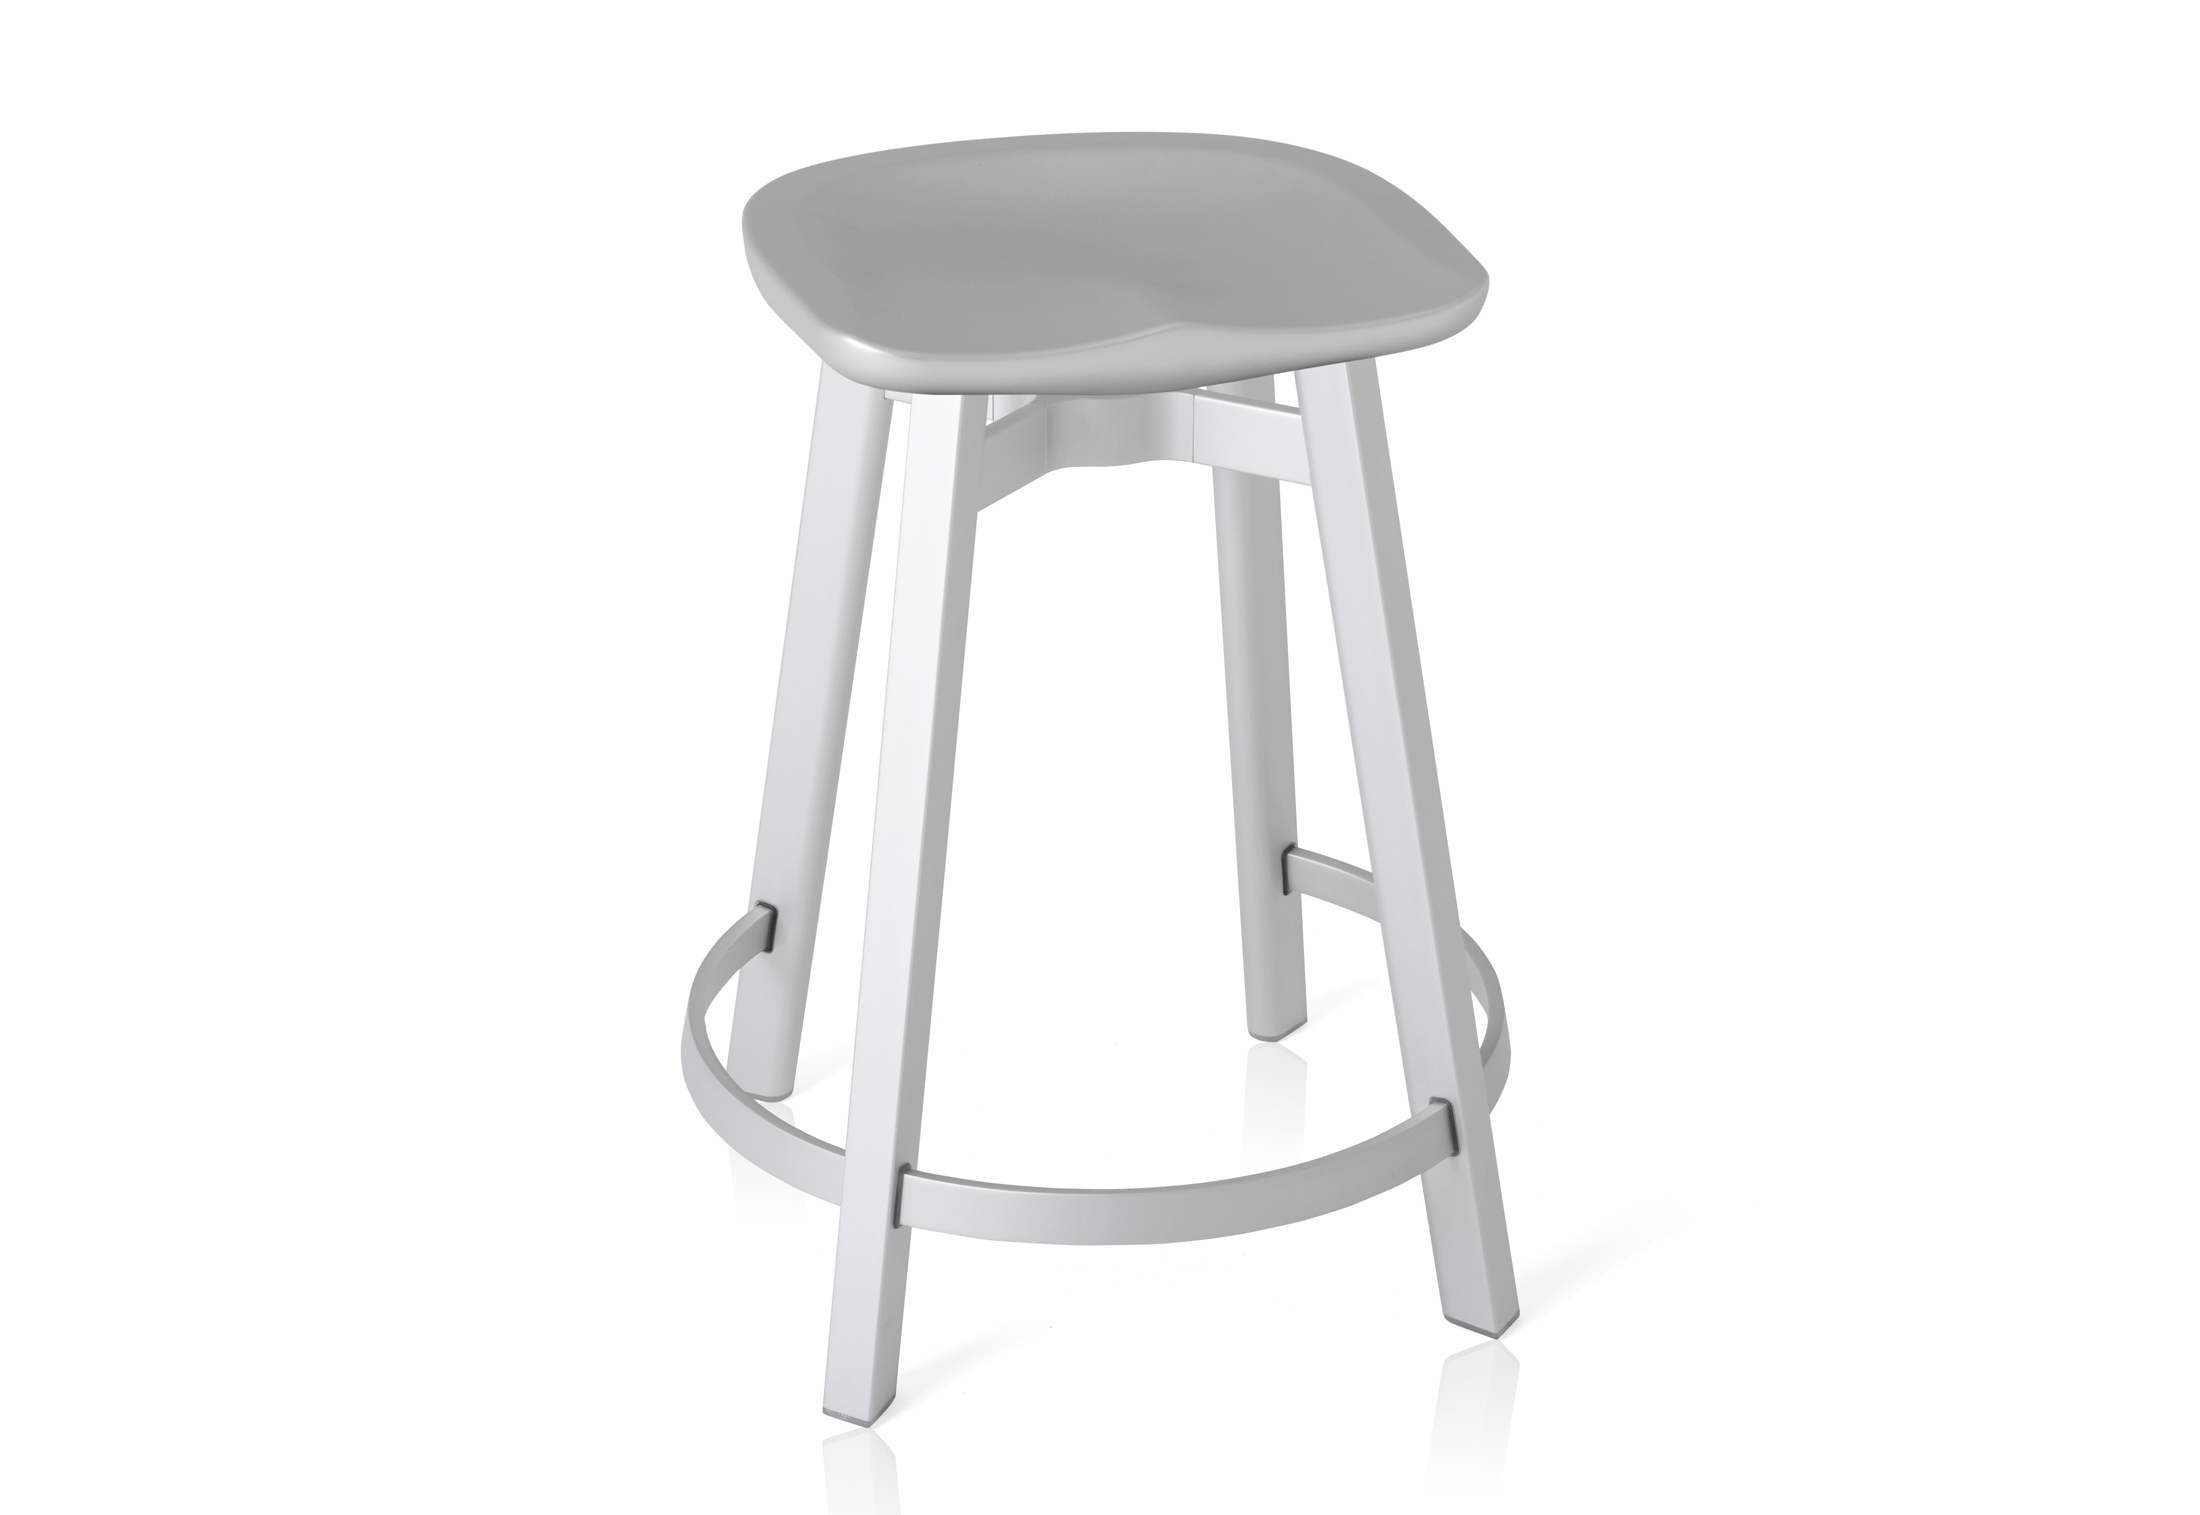 Su Counter Stool By Emeco Stylepark